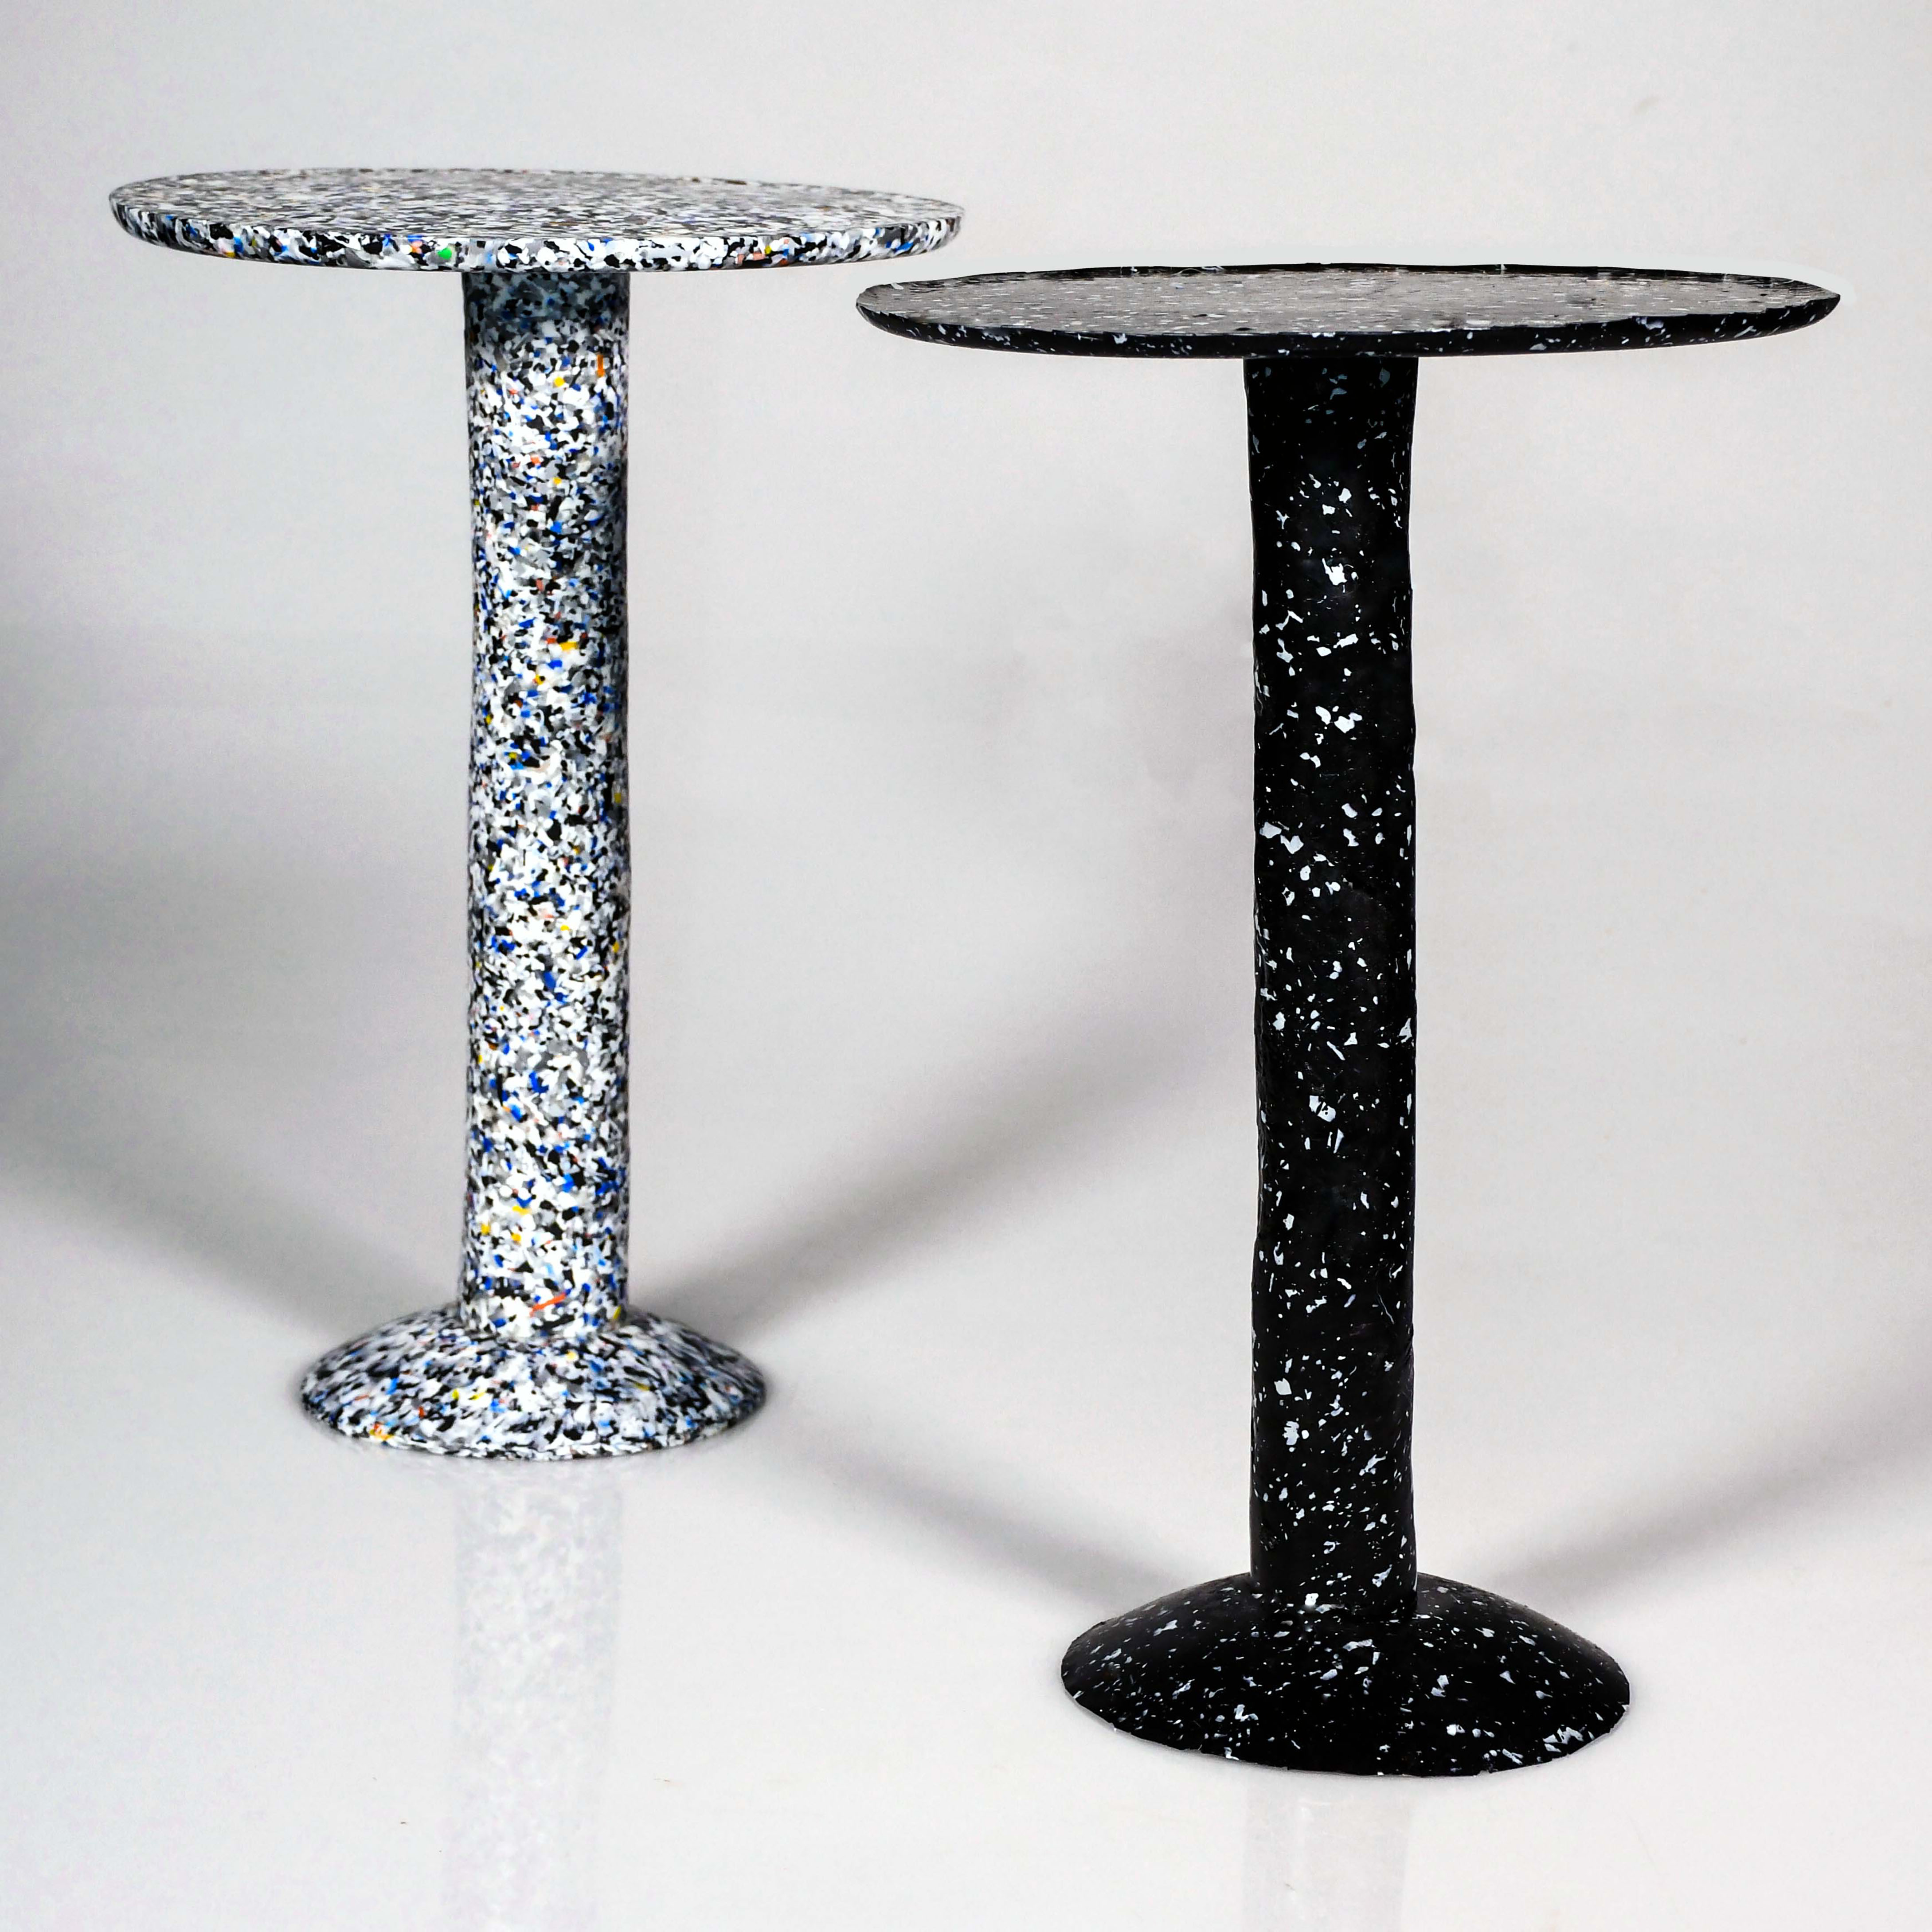 Matthew Harkness_Light and Dark Speckled Side Tables